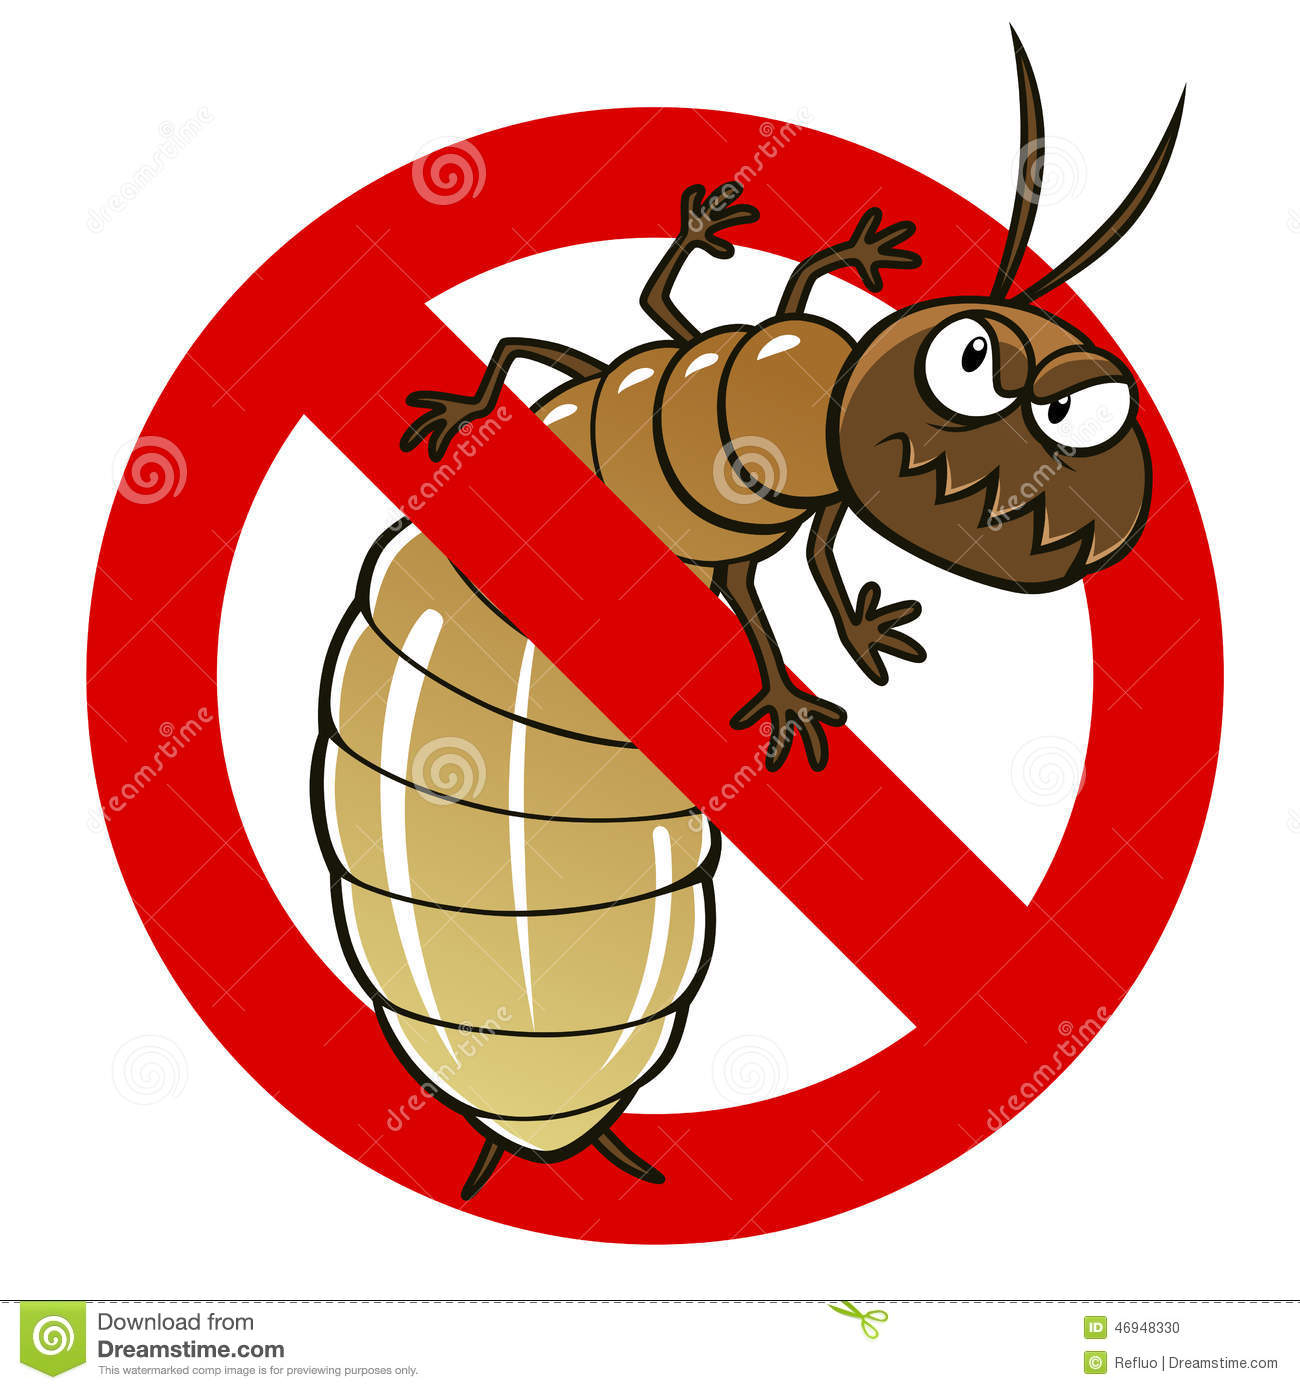 anti-termite-sign-pest-funny-cartoon-46948330.jpg